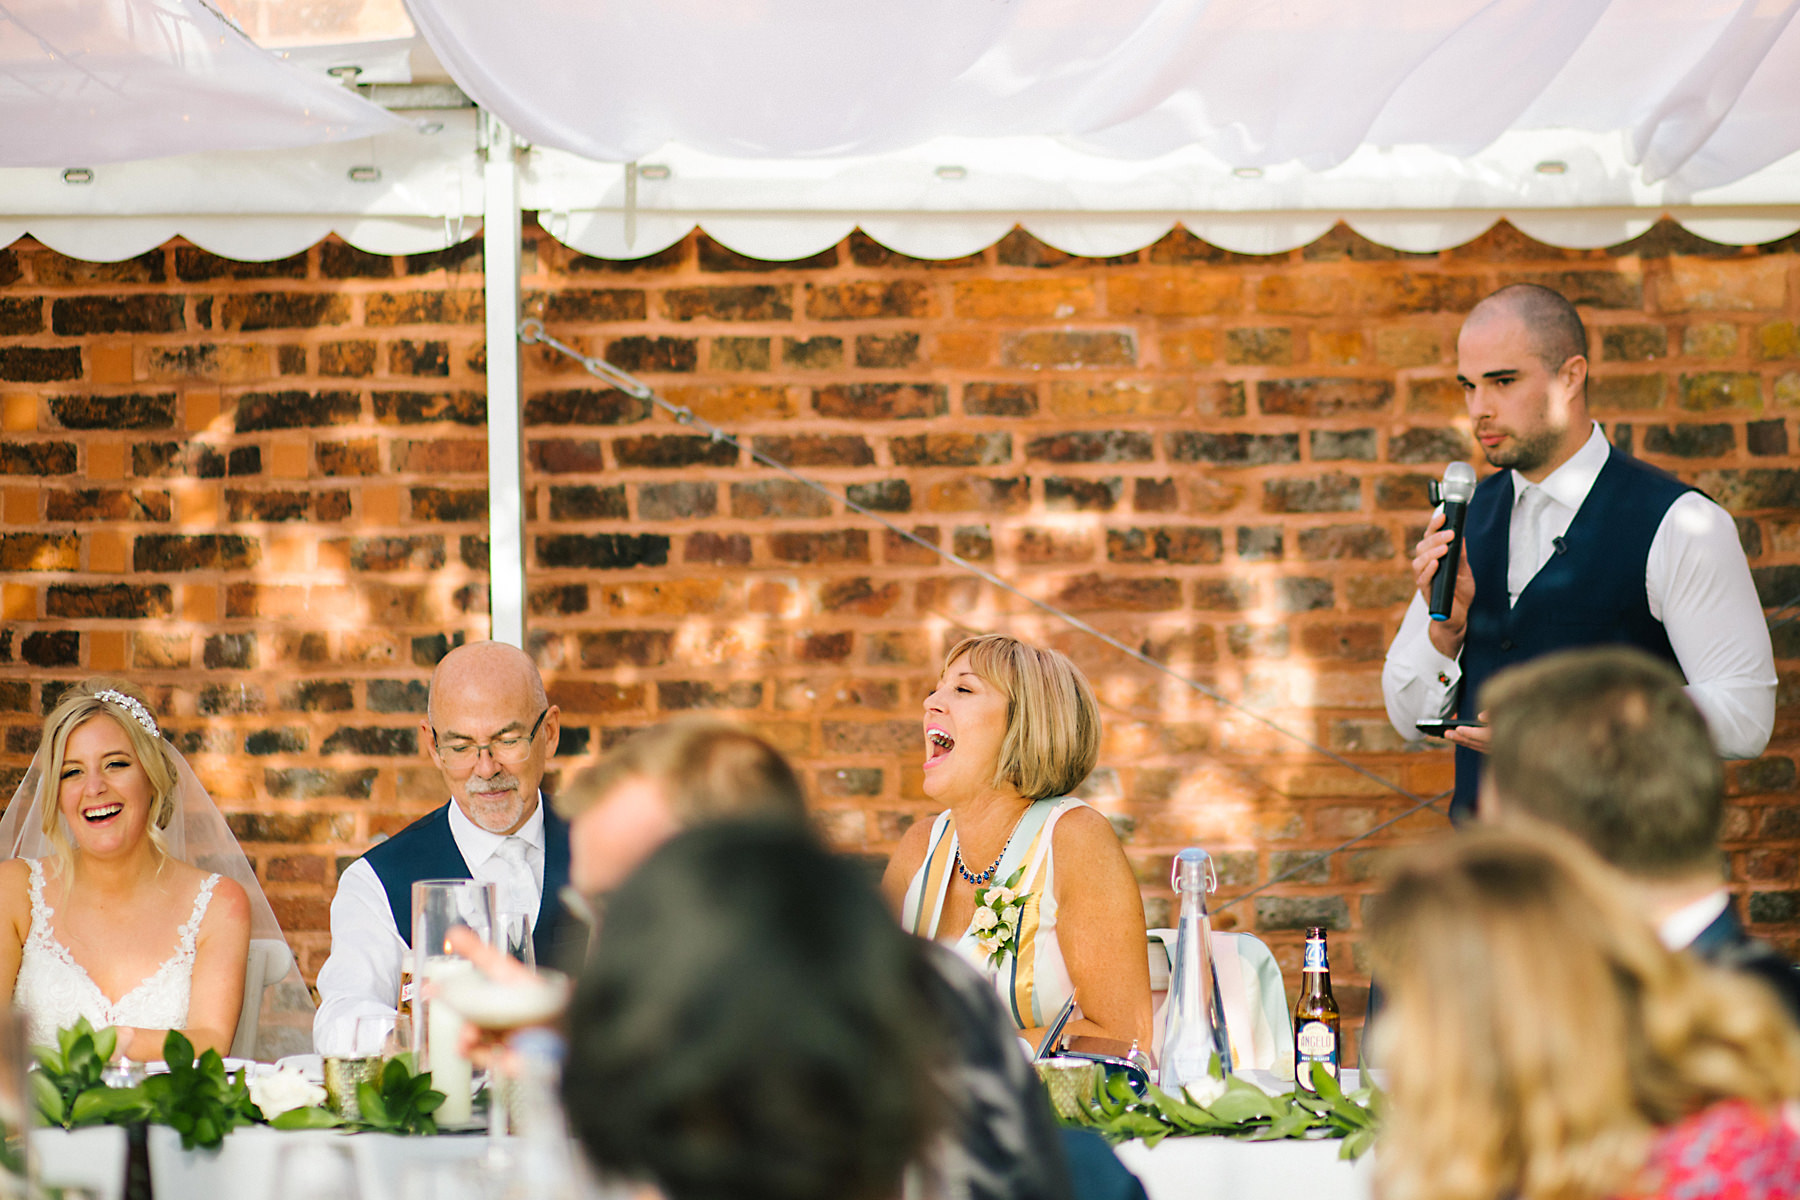 speeches at a wedding